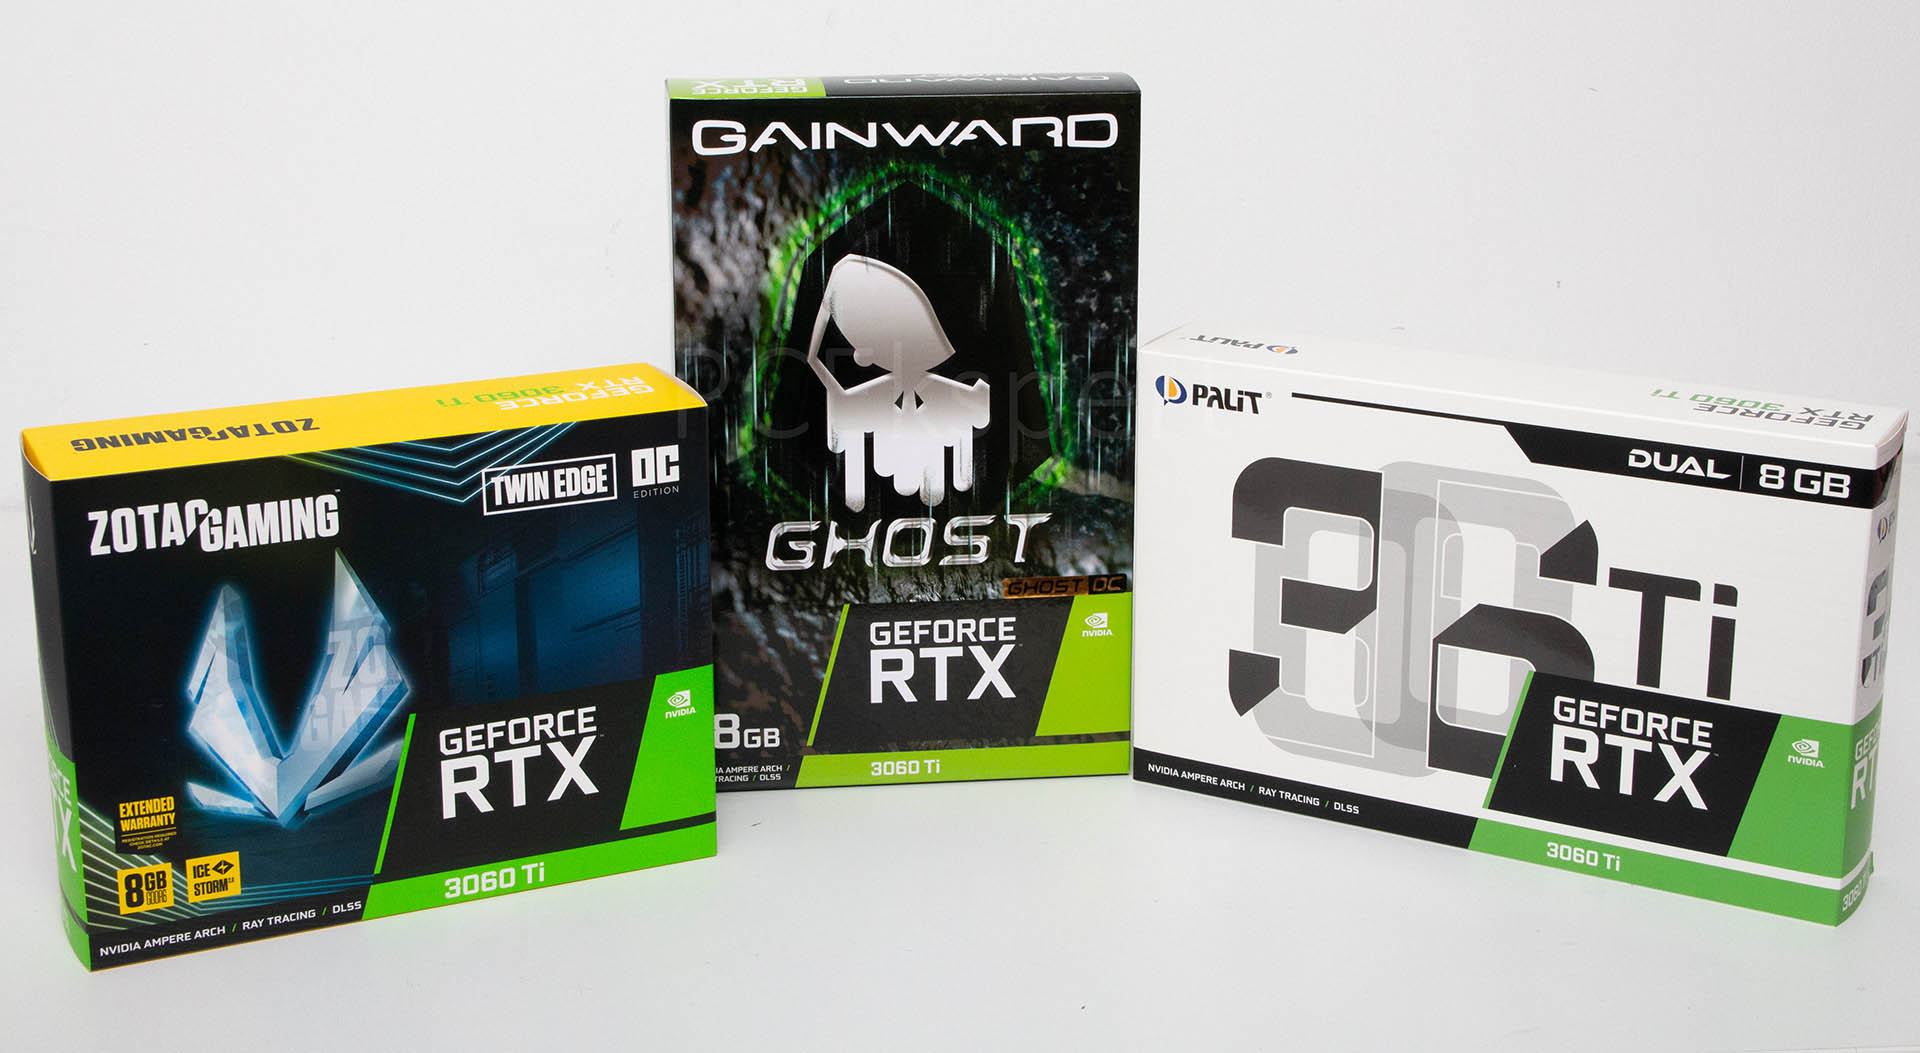 Gainward GeForce RTX 3060 Ti Ghost OC, Palit GeForce RTX 3060 Ti Dual & Zotac GeForce RTX 3060 Ti Twin Edge OC recenzija